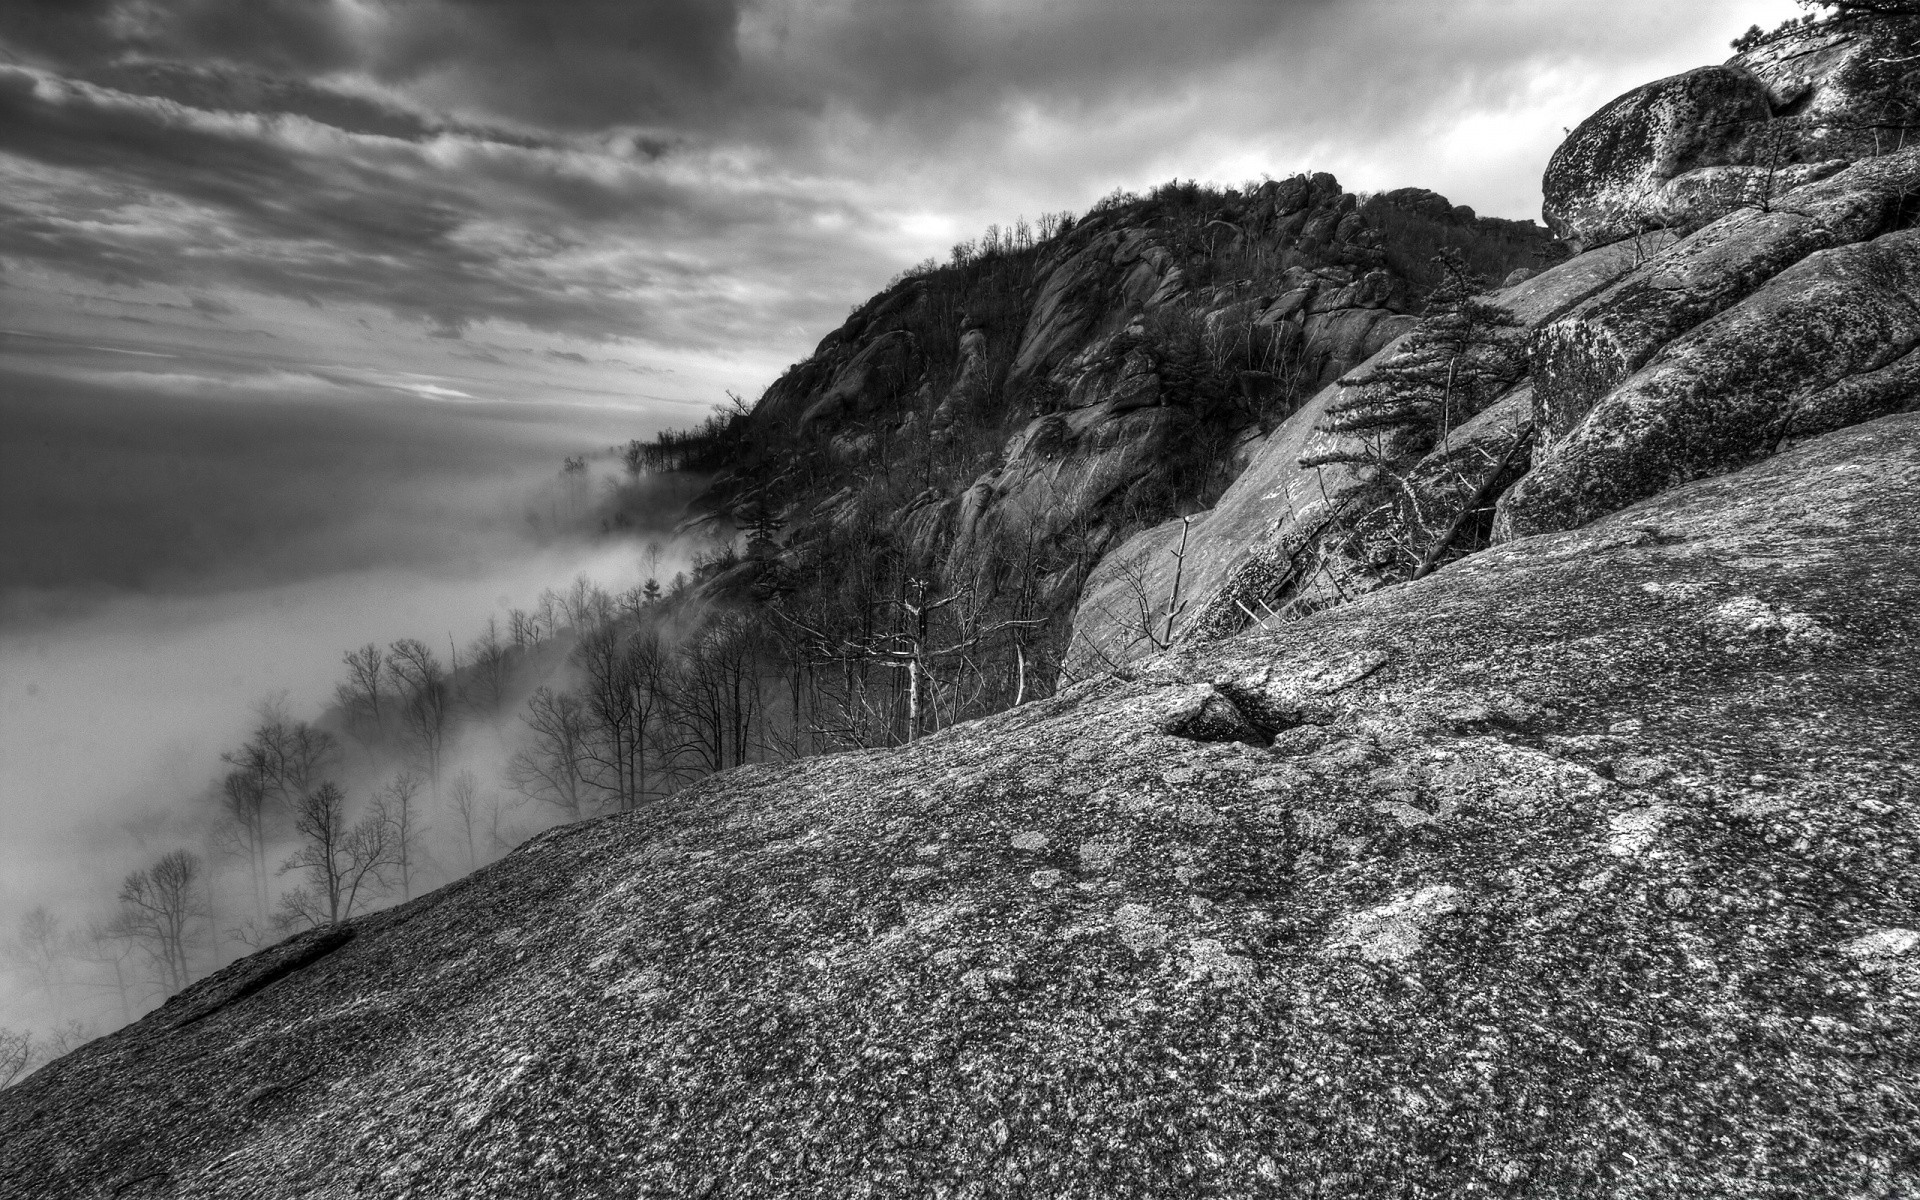 black and white landscape nature mountain sky rock travel cloud outdoors scenic